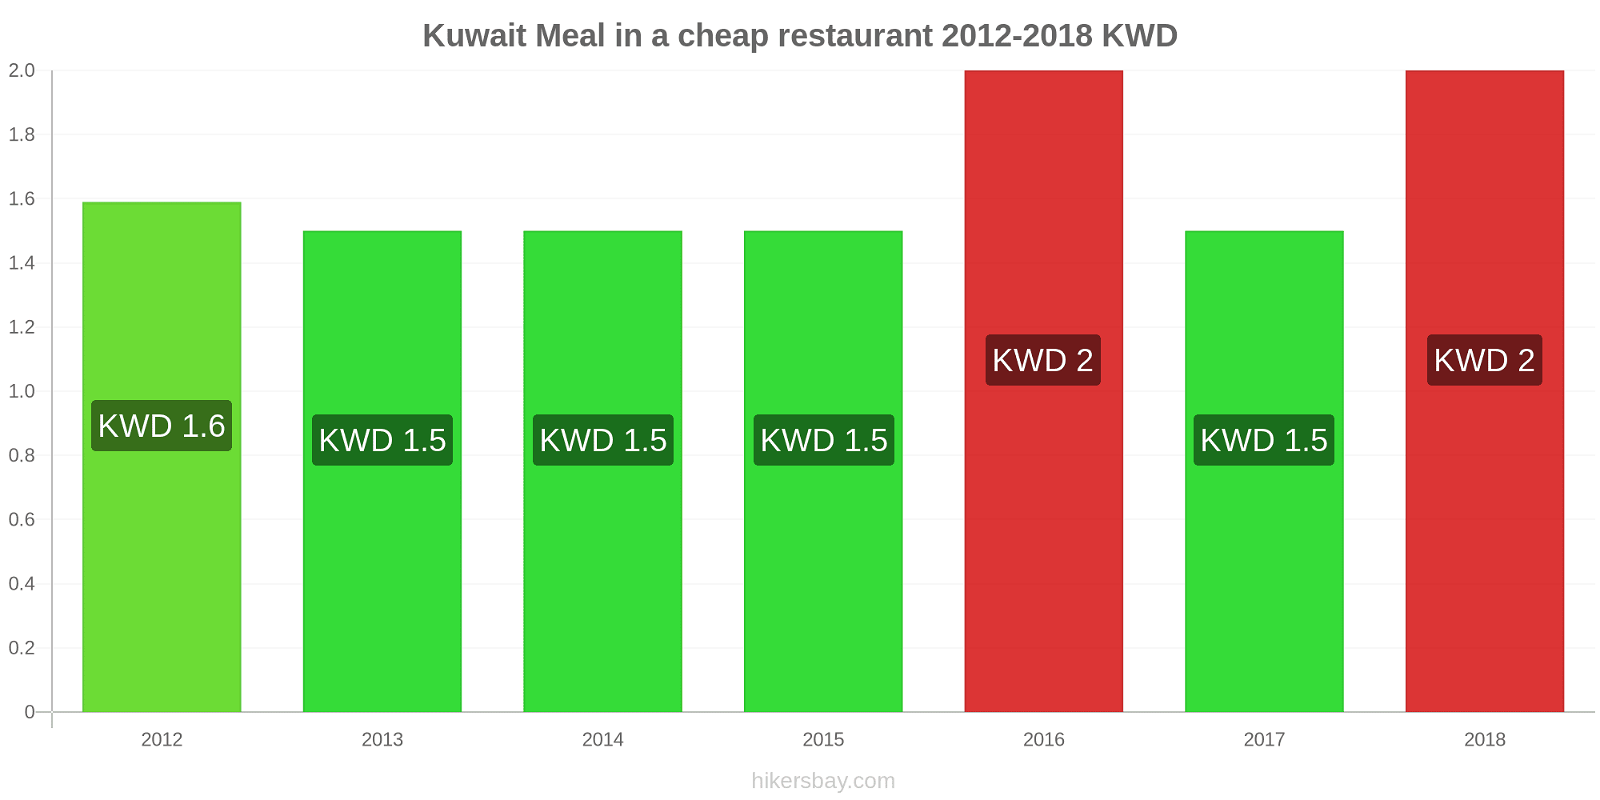 Kuwait price changes Meal in a cheap restaurant hikersbay.com